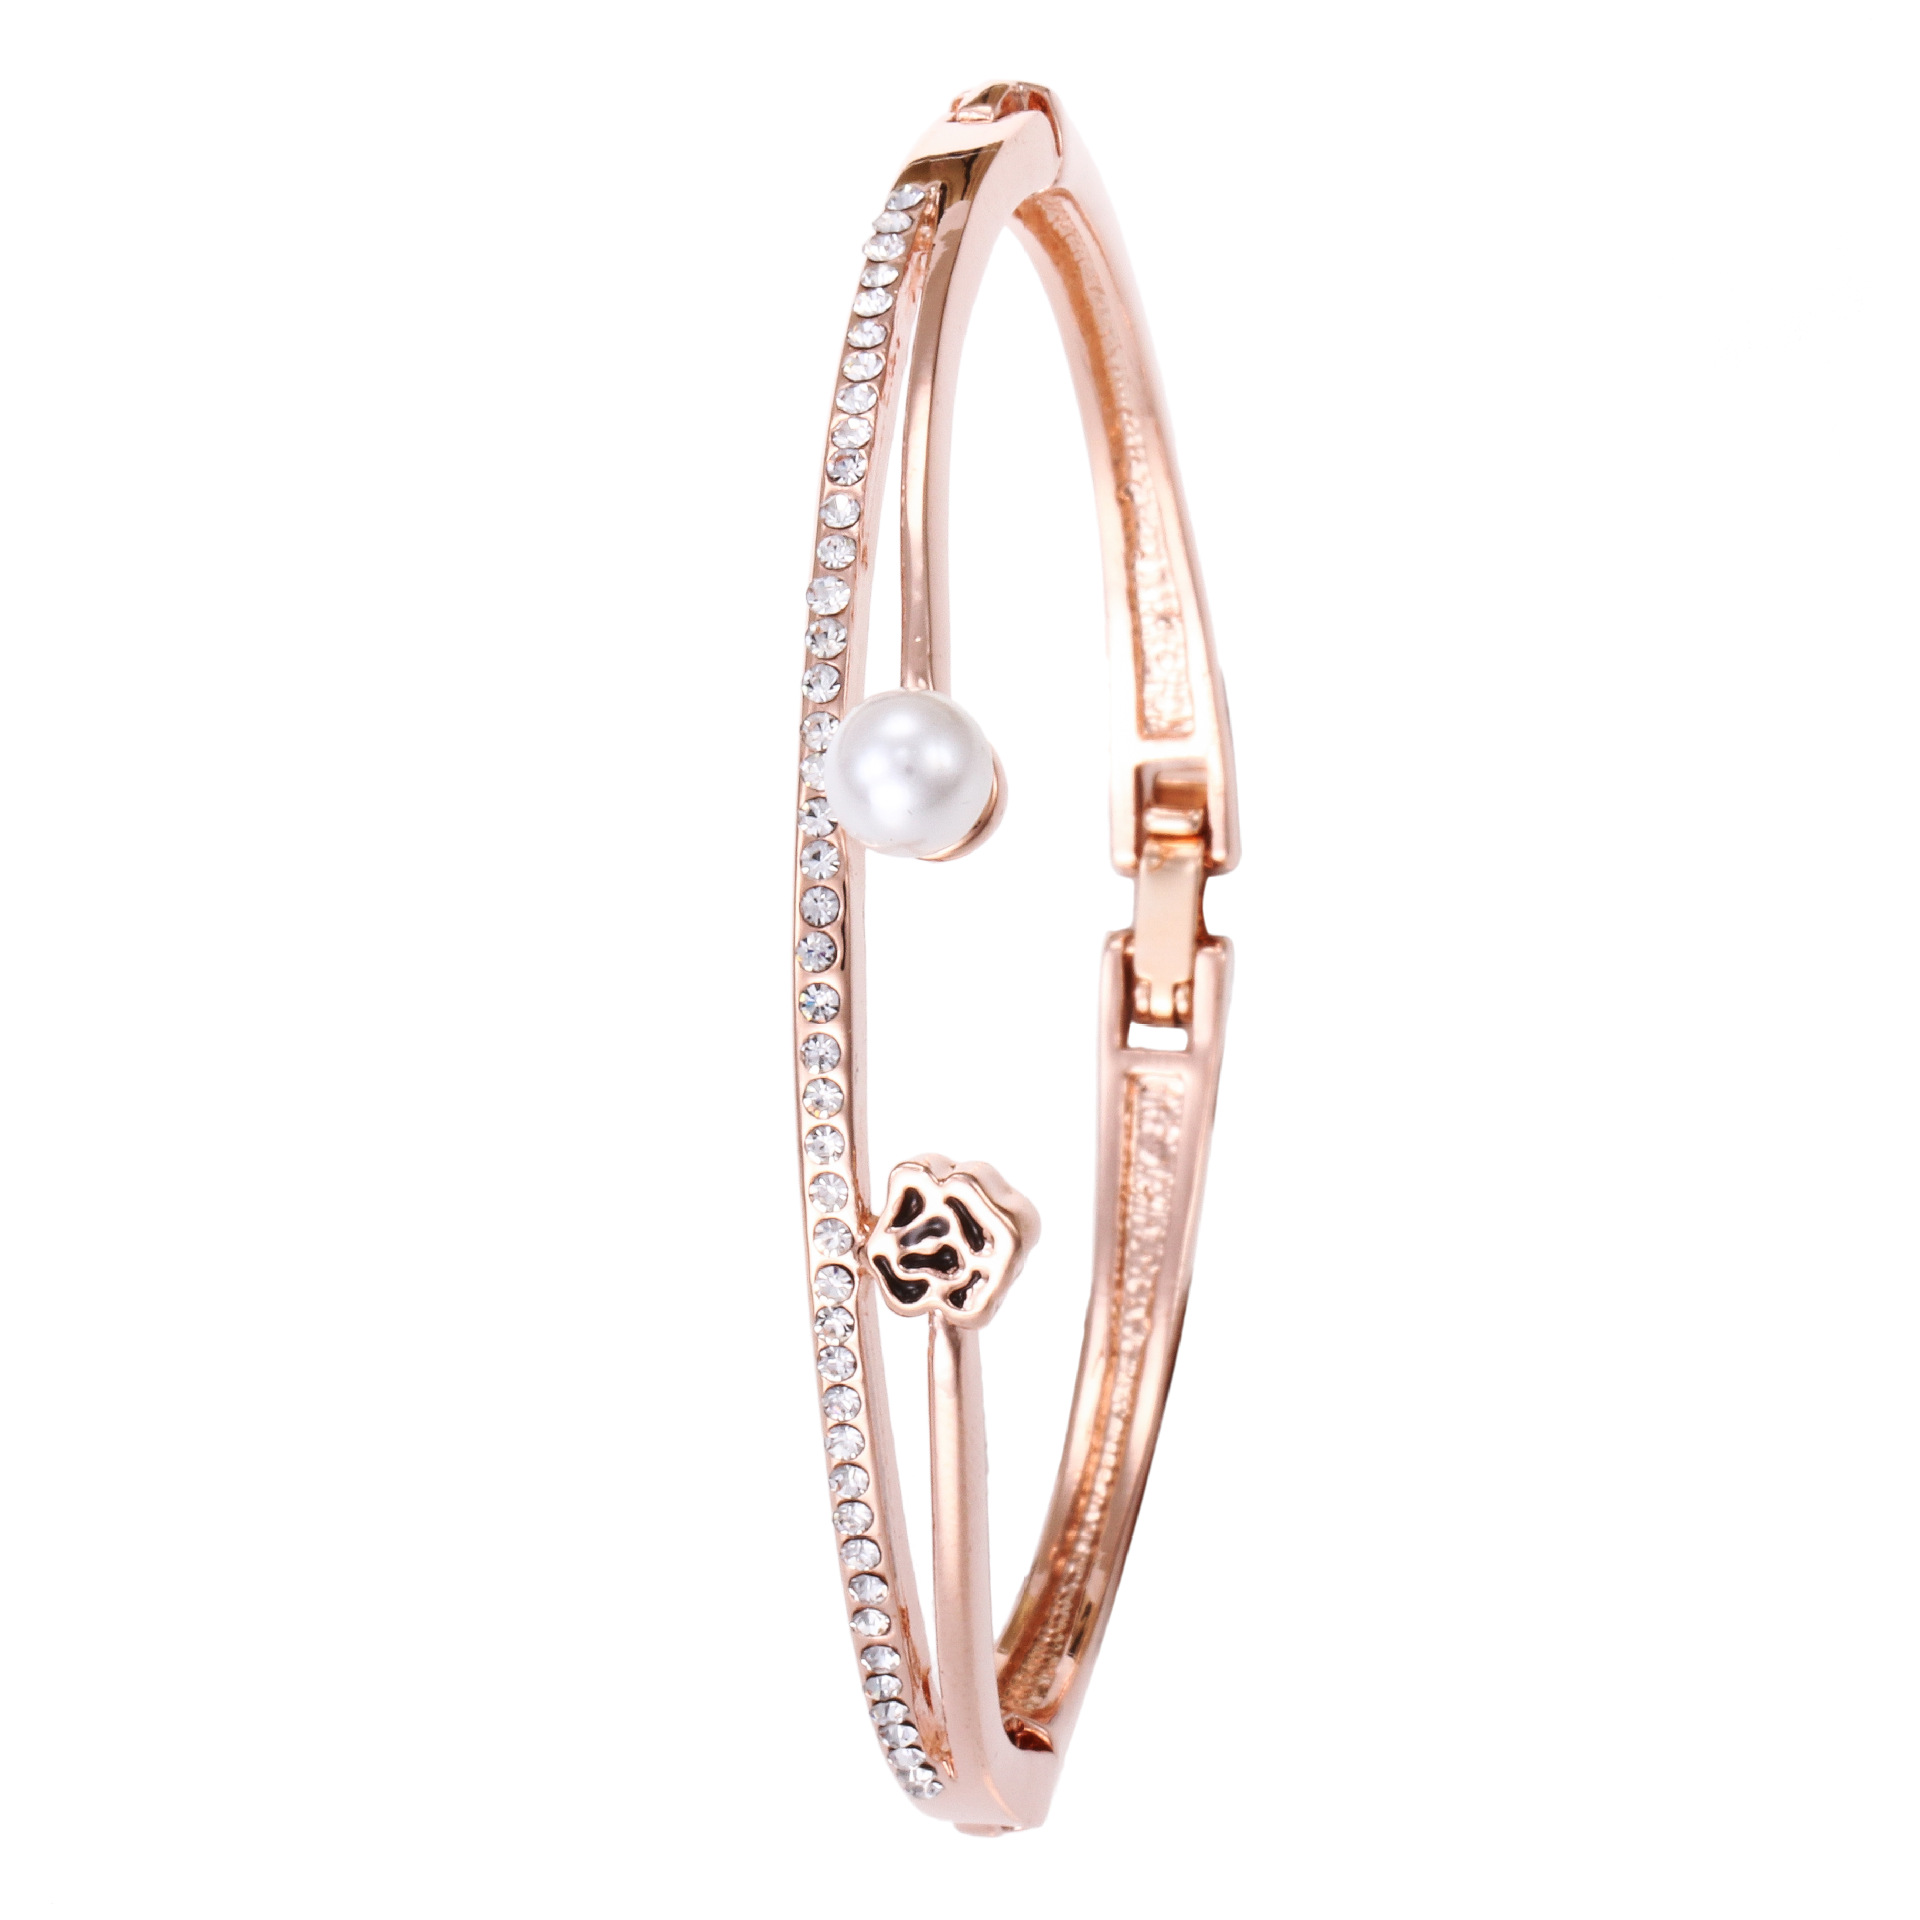 Alloy Fashion  bracelet  (1-rose alloy)   NHMM2295-1-rose-alloy